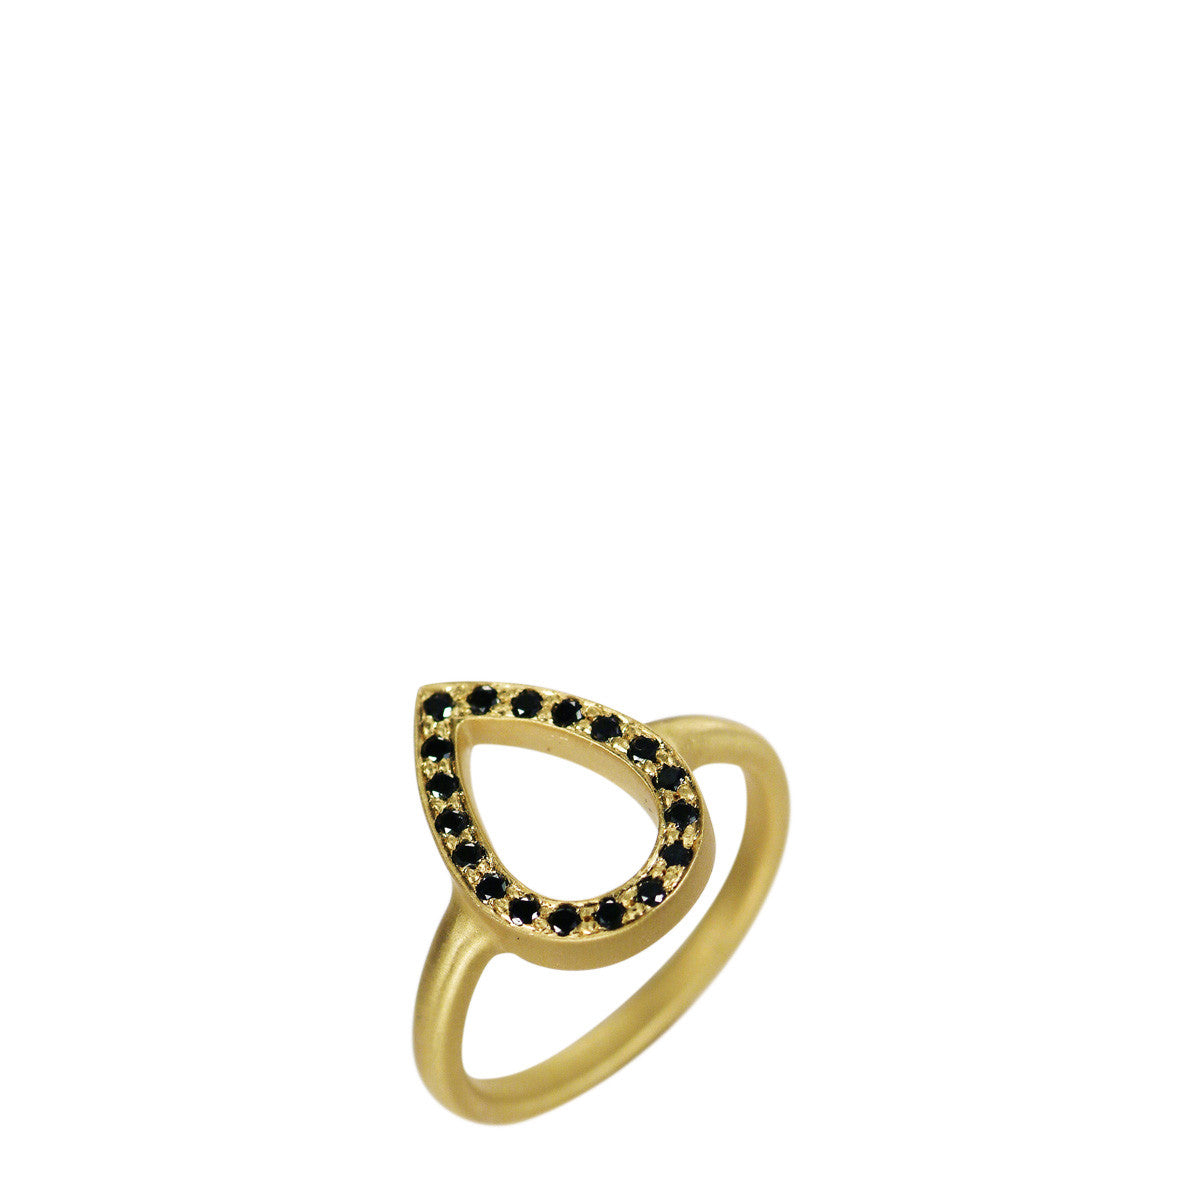 18K Gold Pave Teardrop Ring with Black Diamonds